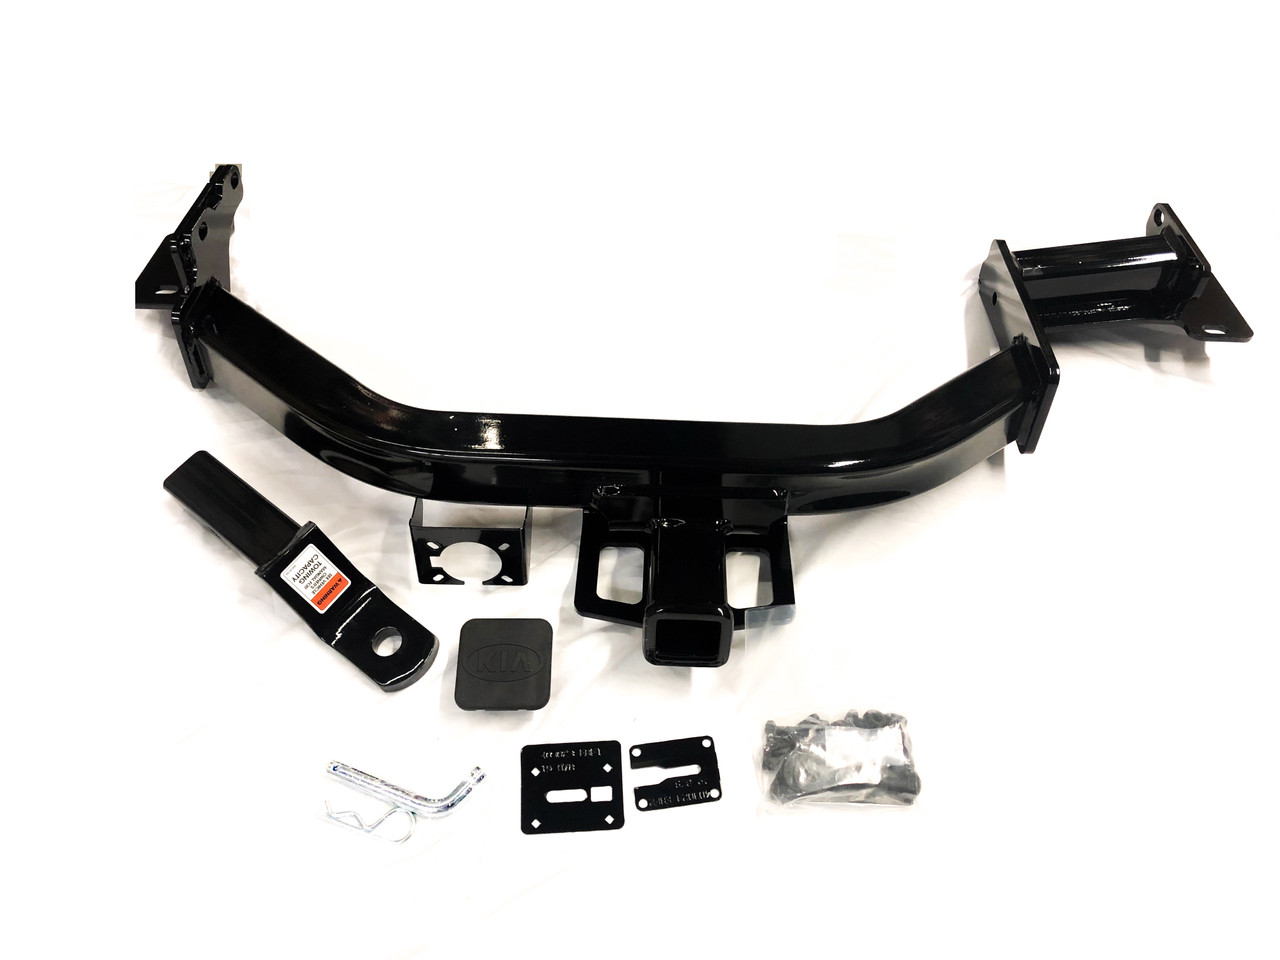 2020 Kia Telluride Trailer Hitch Receiver Free Shipping